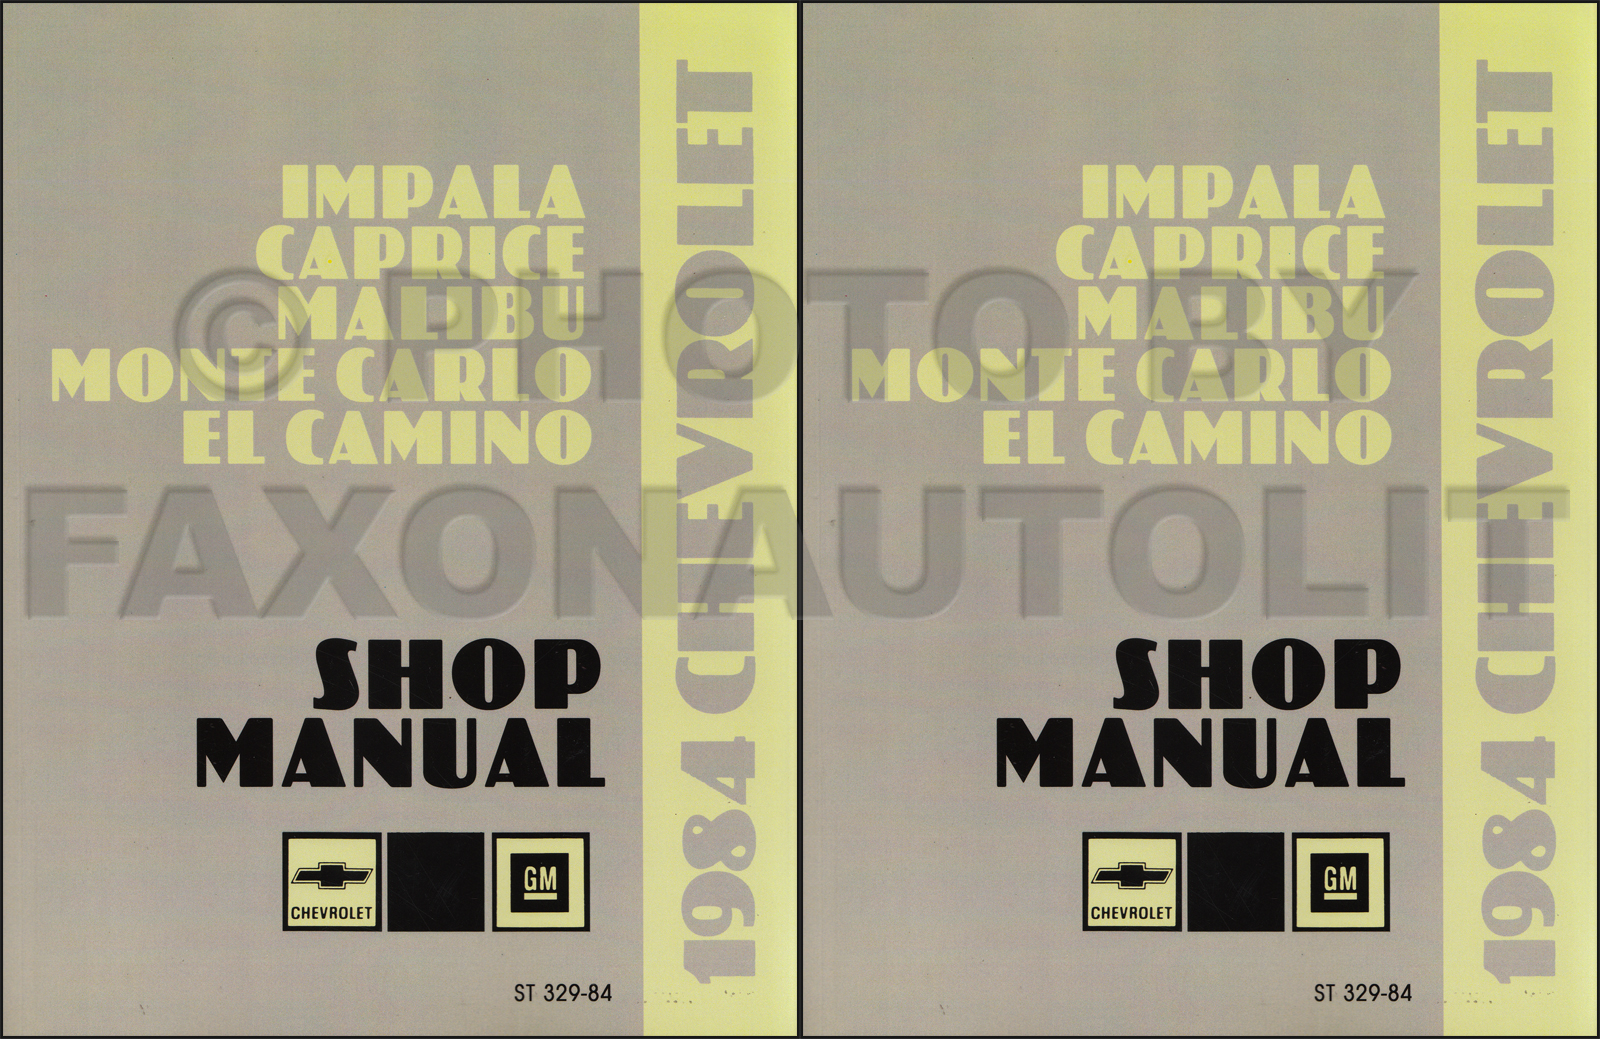 1984 Chevy Big Car Repair Manual Original--Impala Caprice Malibu Monte  Carlo El Camino